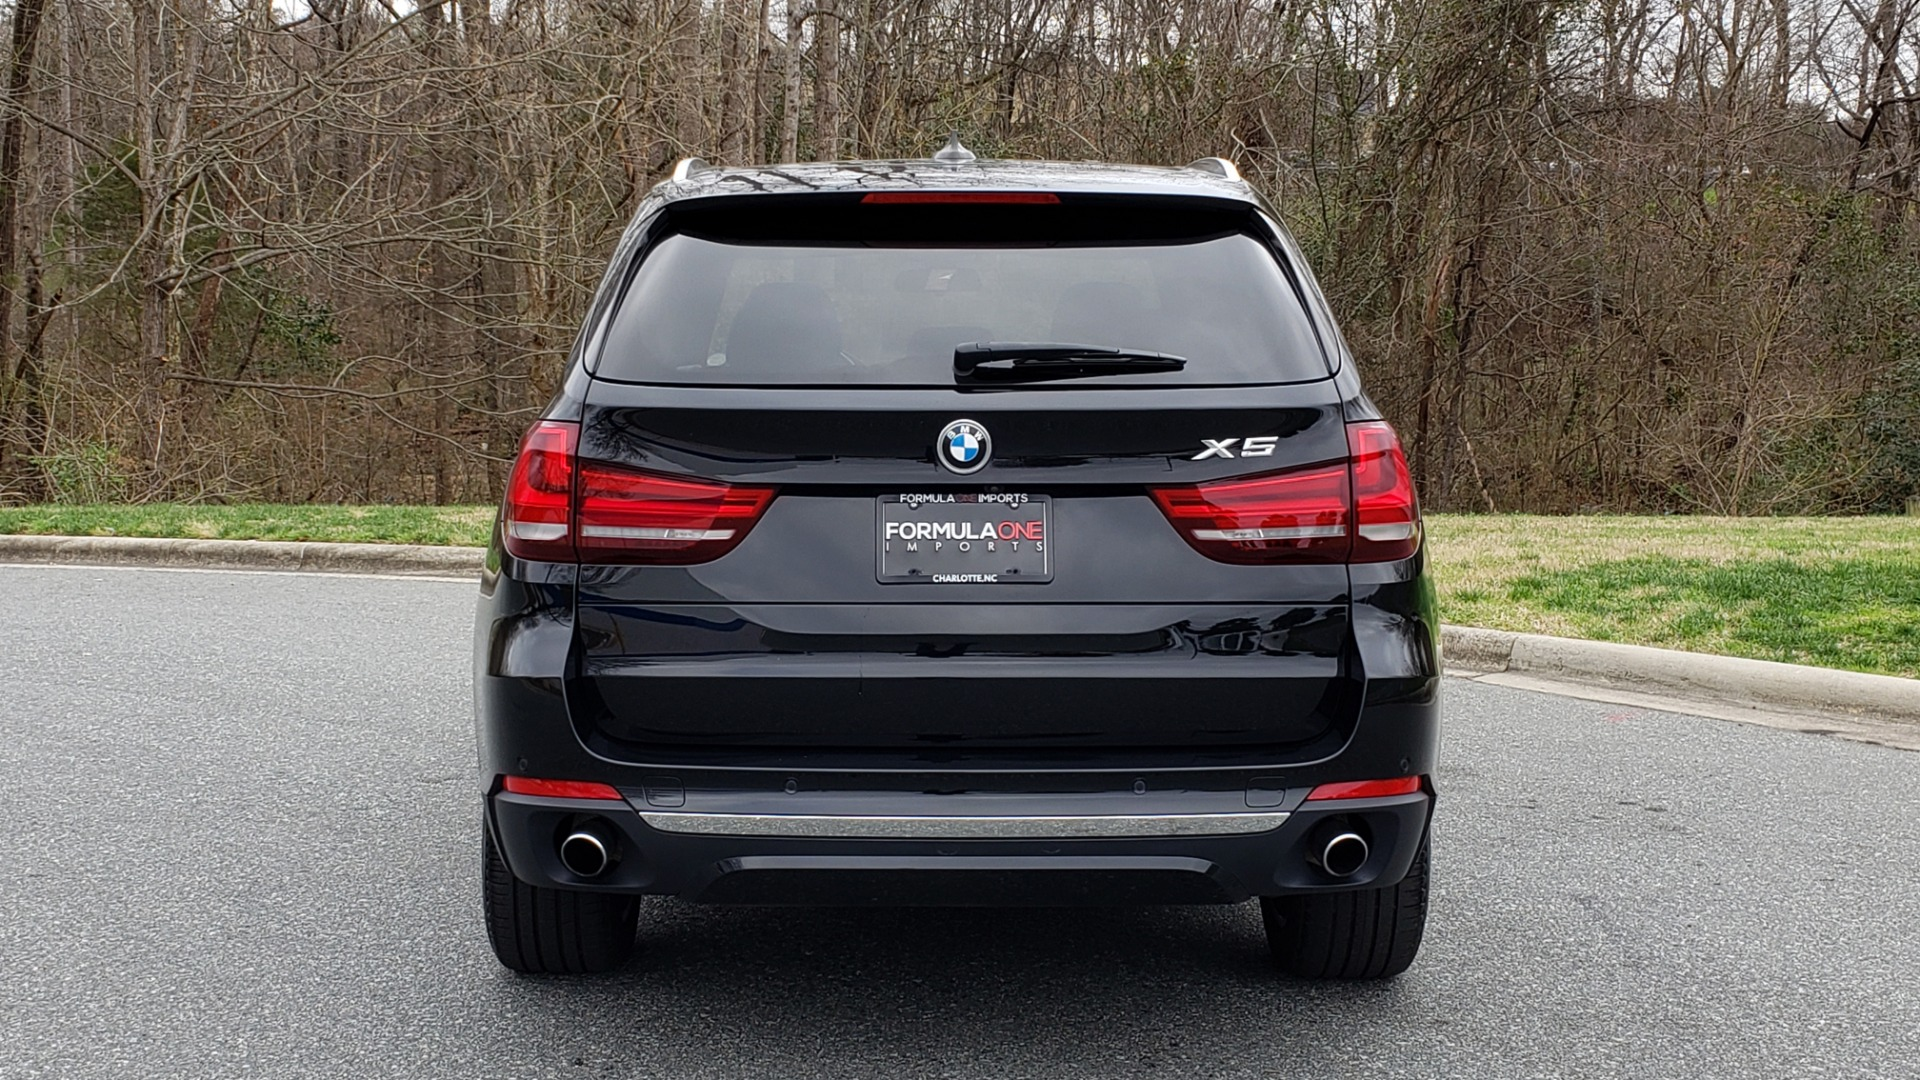 Used 2017 BMW X5 XDRIVE35I / PREM LUX PKG / DRVR ASST / CLD WTHR / APPLE CAR PLAY for sale Sold at Formula Imports in Charlotte NC 28227 29